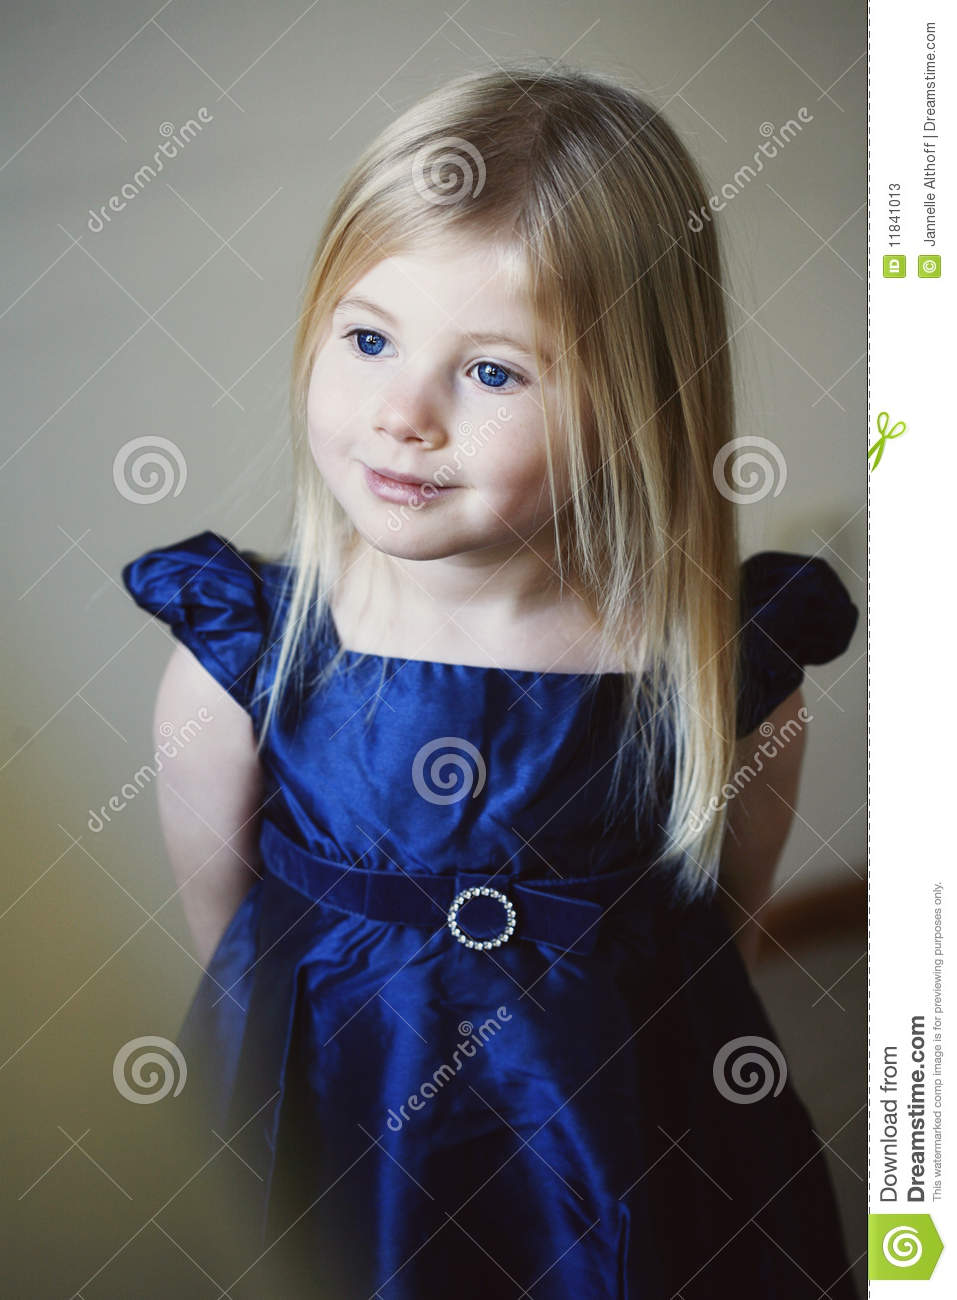 Little girl wearing blue holiday christmas dress matching her blue